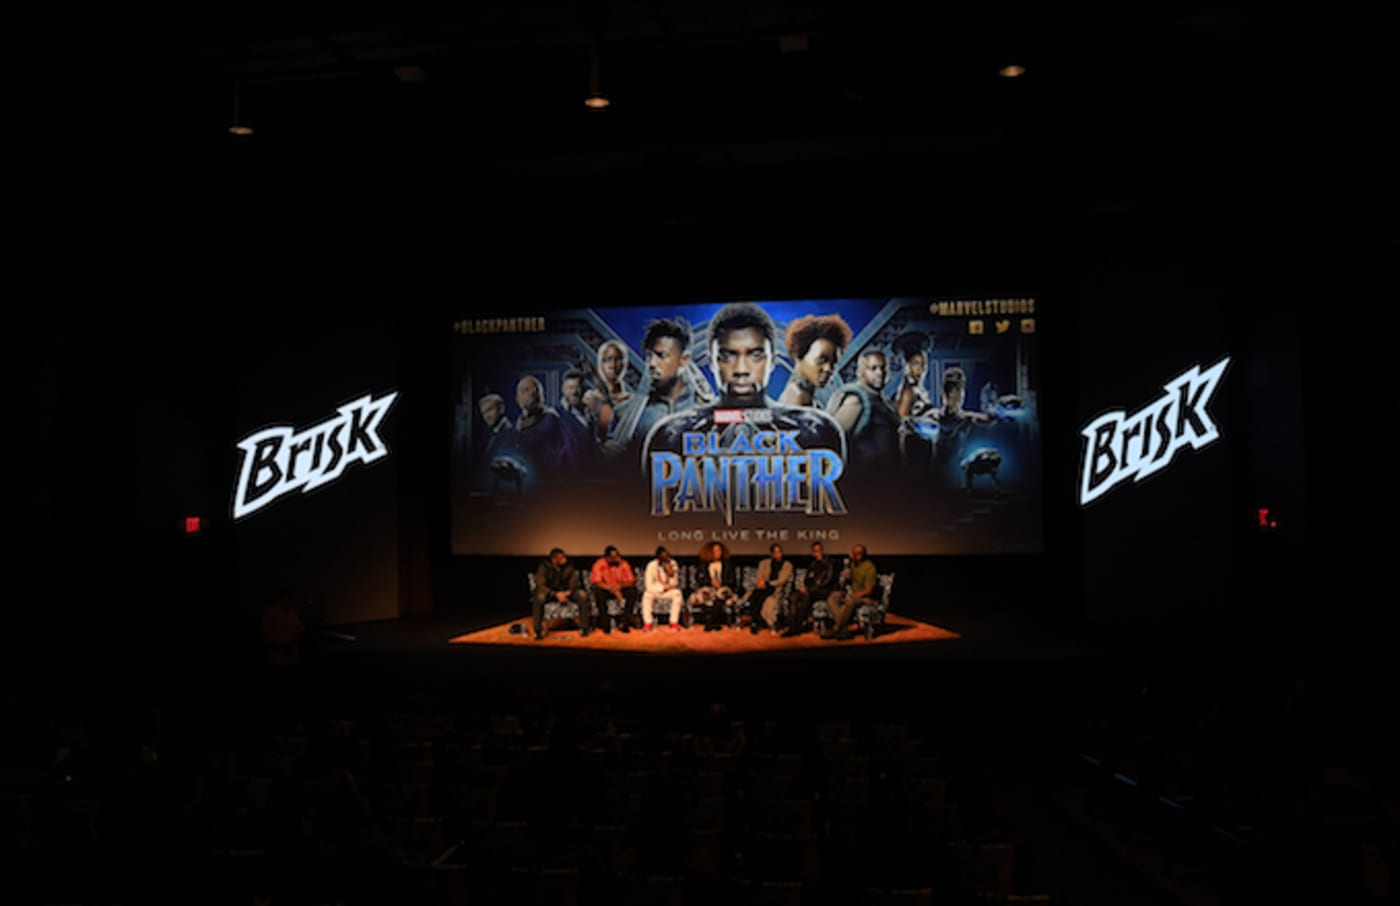 A 'Black Panther' advanced screening.